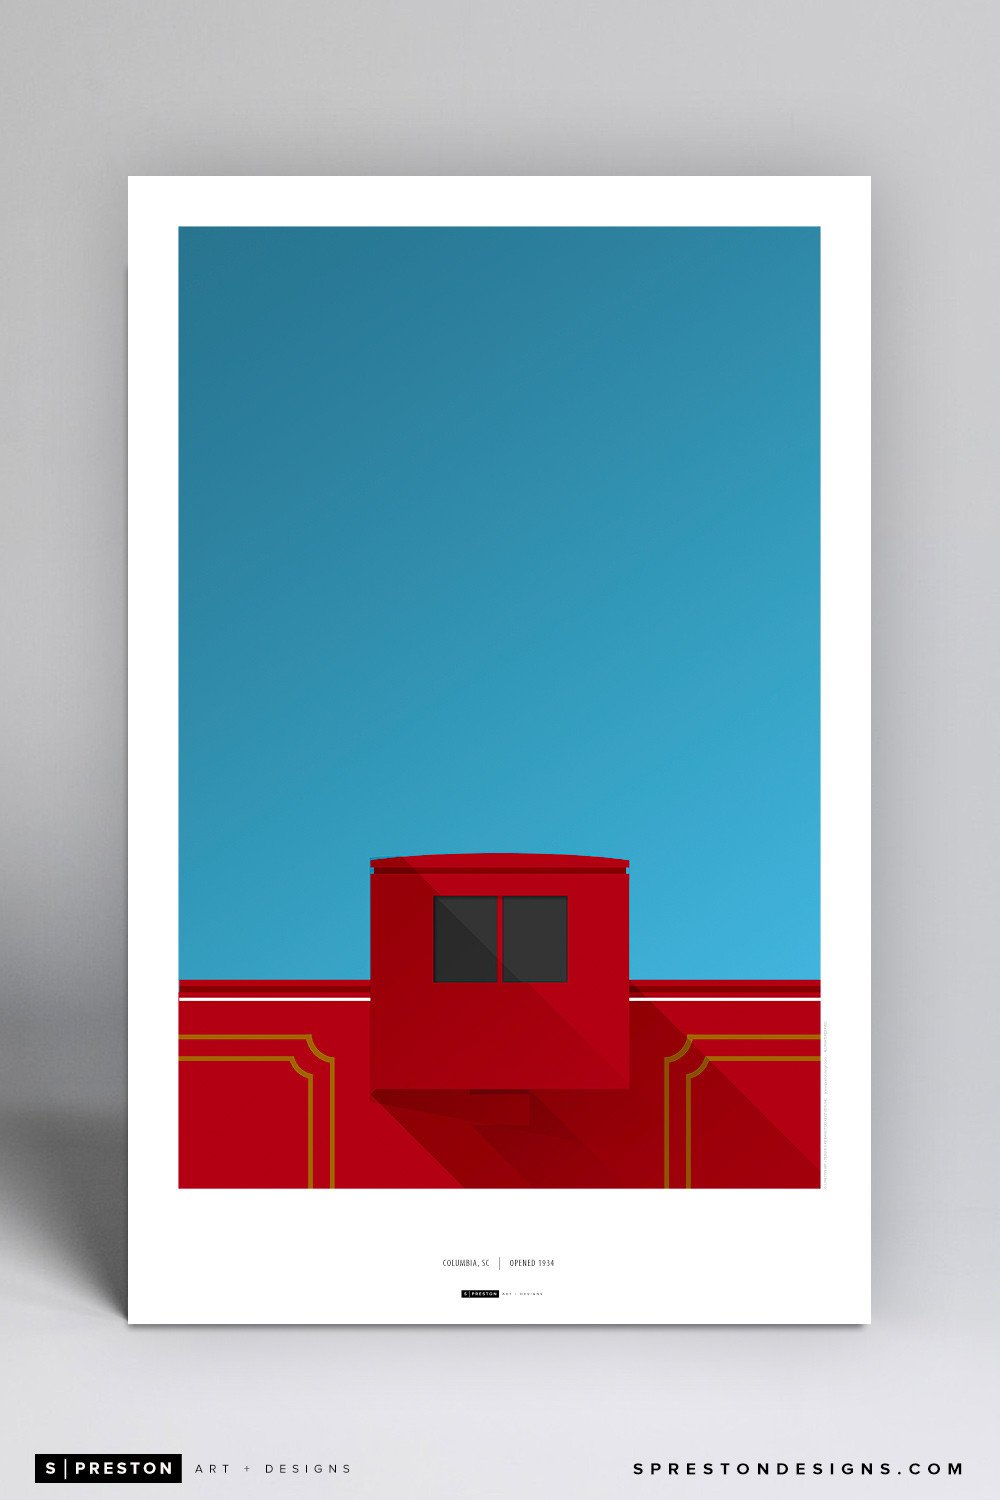 Minimalist Williams-Brice Stadium Poster Print - University of South Carolina - S. Preston Art + Designs